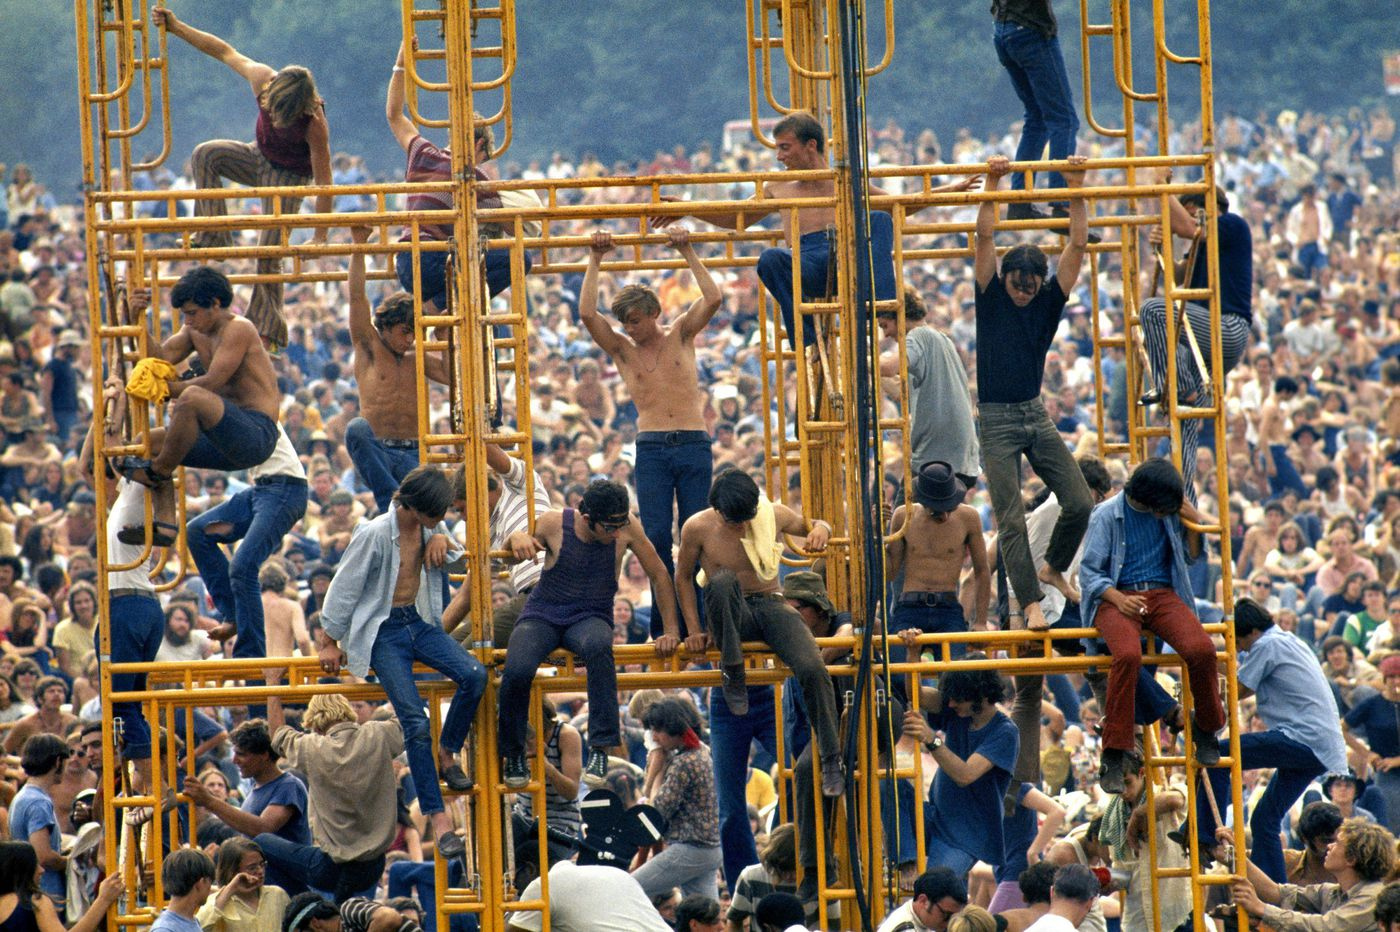 The Woodstock 50th anniversary and a decade of 1960s nostalgia: Thank goodness it's almost over